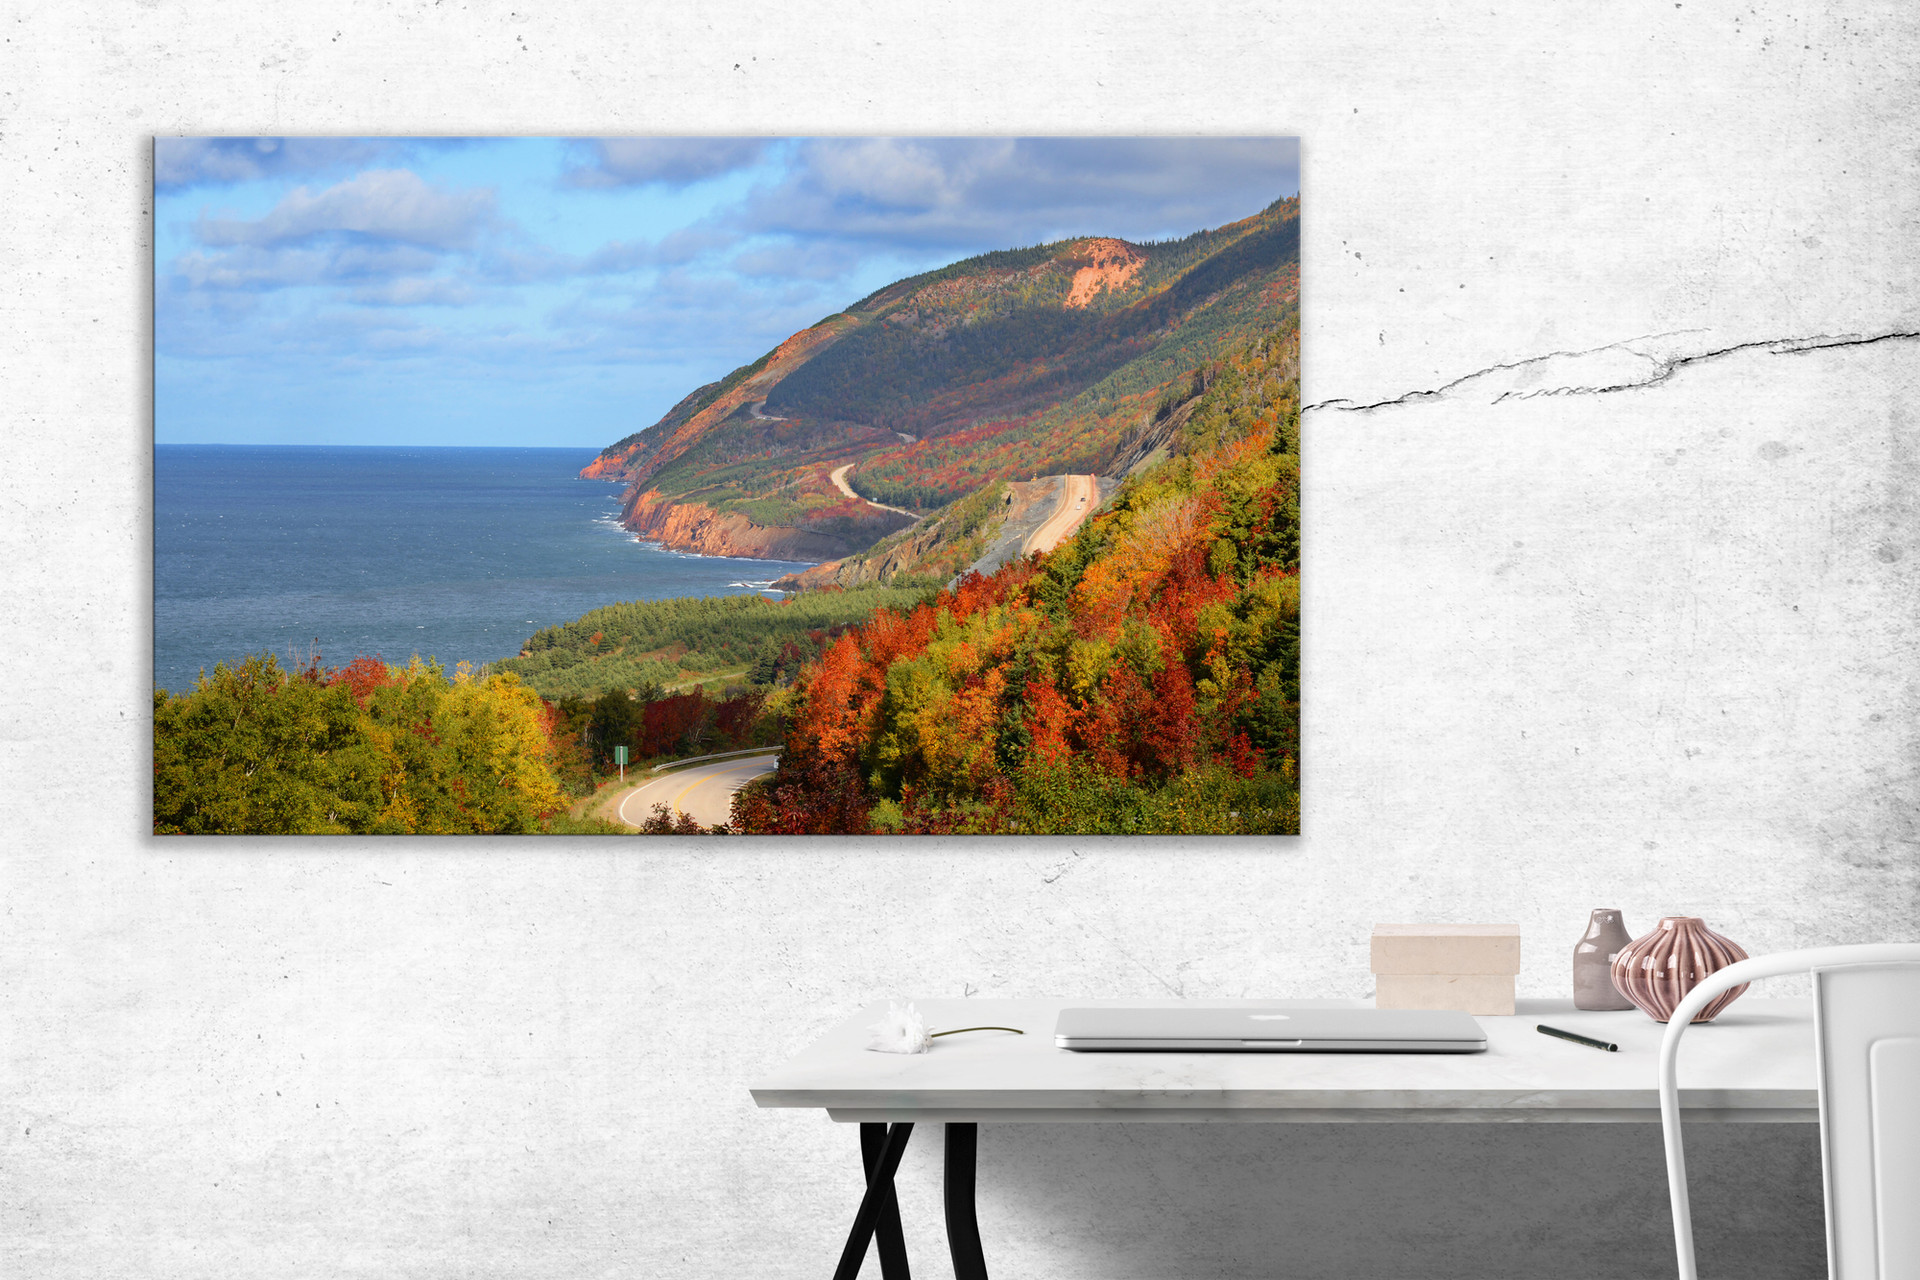 At Last The Cabot Trail - $225 - 40 x 30